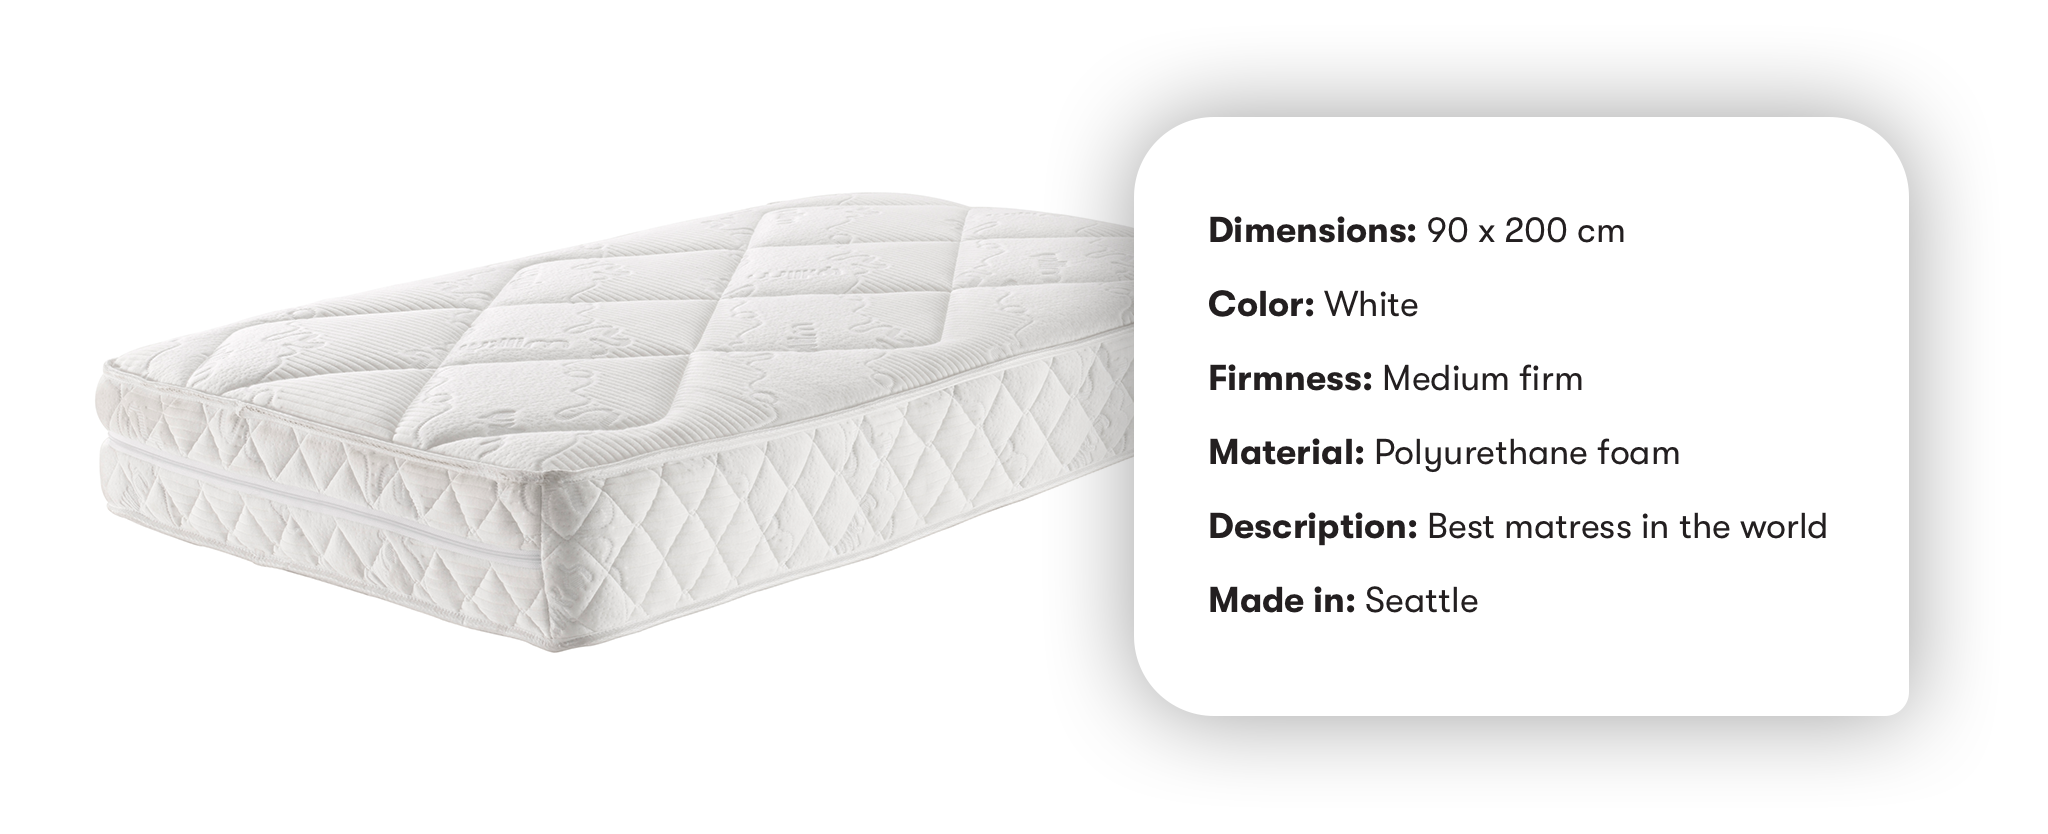 Photo of a mattress with some metadata